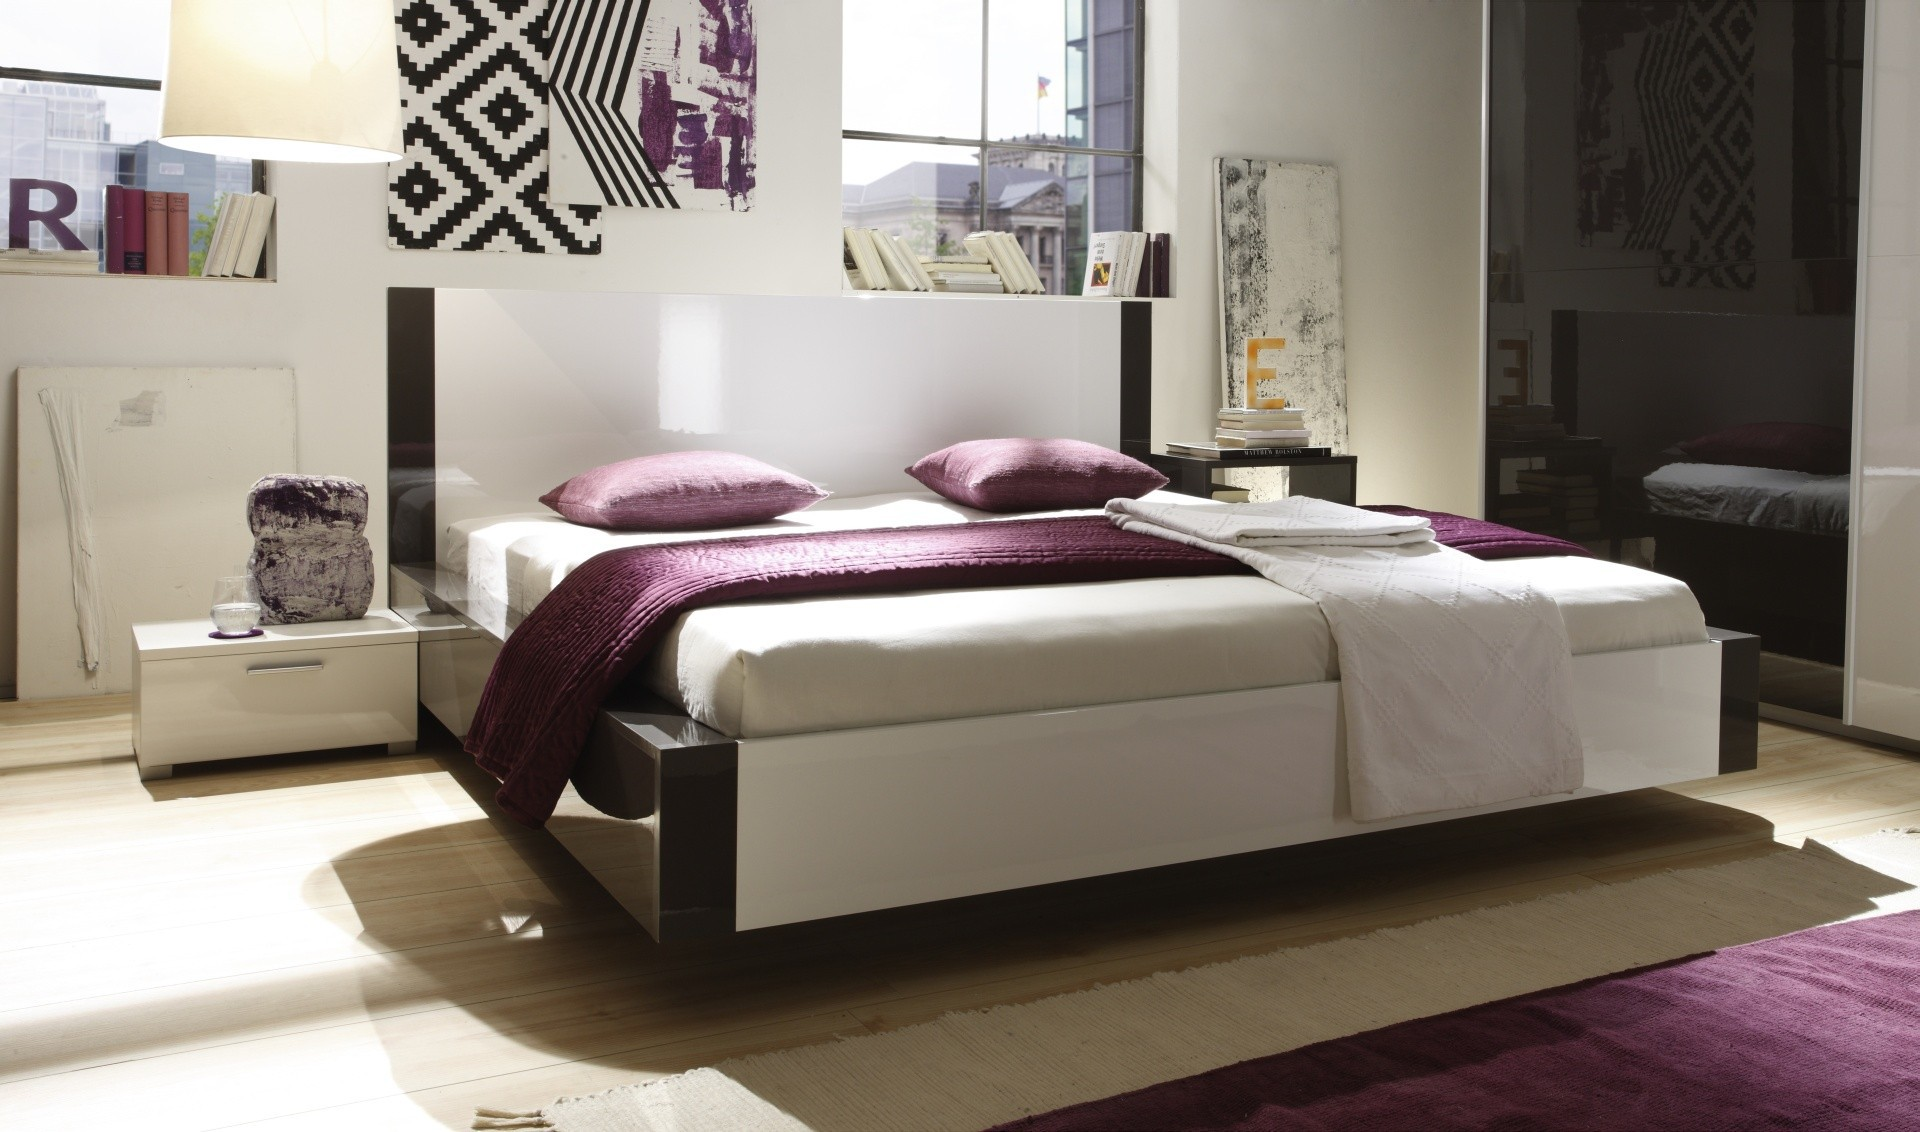 lit moderne 160x200 prix exceptionnel 8 couleurs. Black Bedroom Furniture Sets. Home Design Ideas